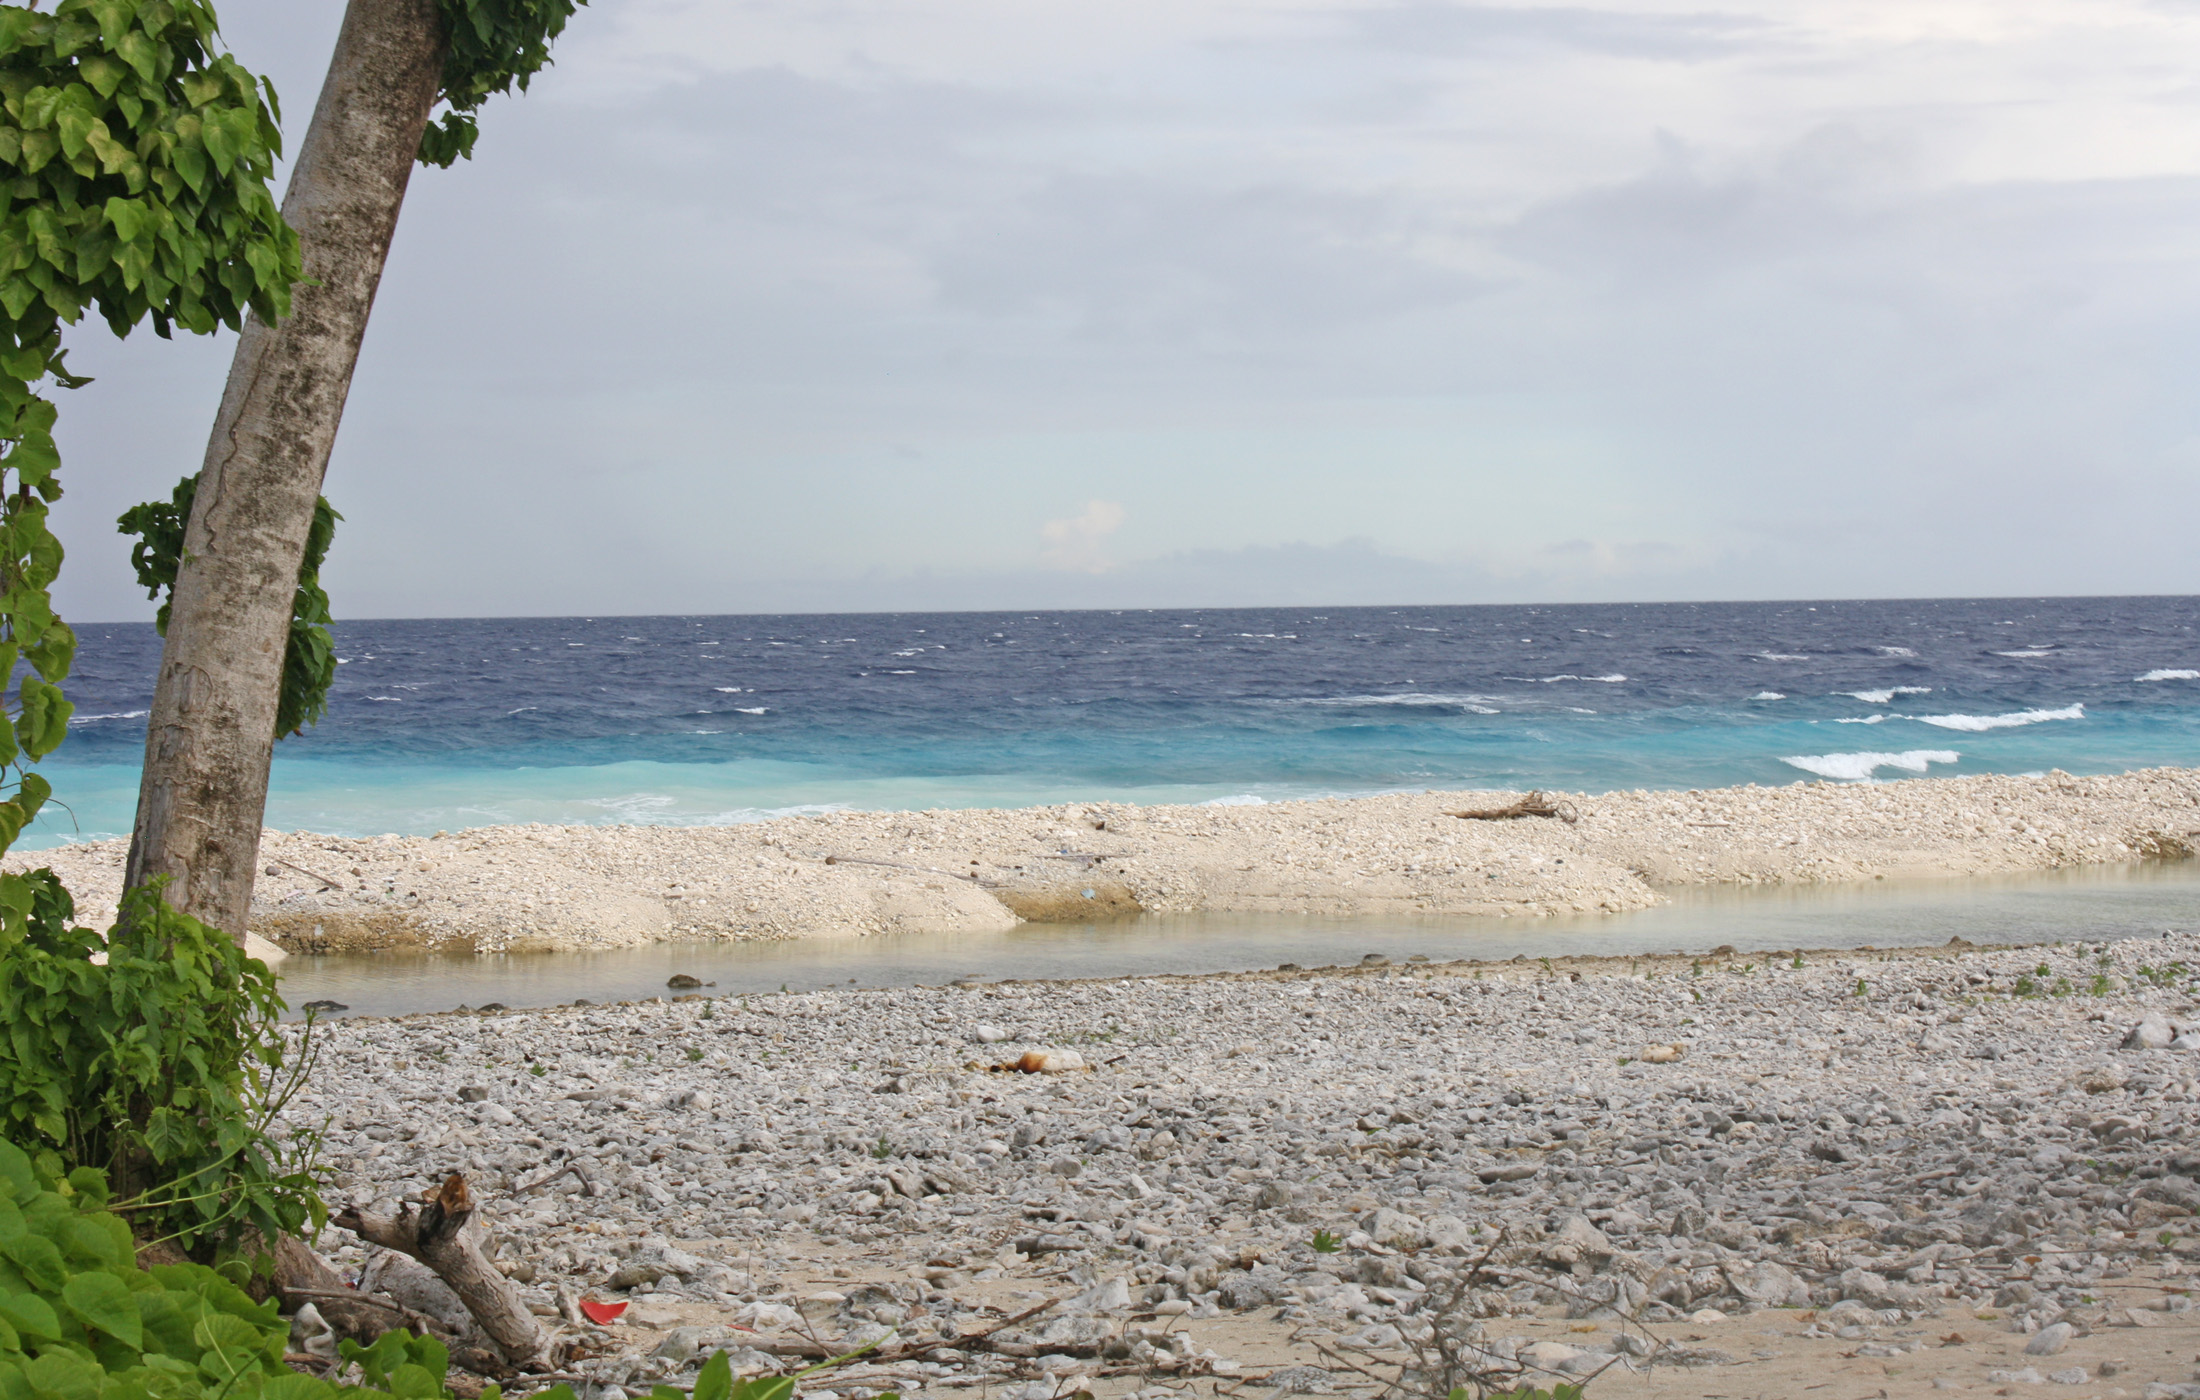 The sea encroached a portion of Angaur, one of the Palauan islands and caused some damage during the storm surge when super typhoon Bopha swept by